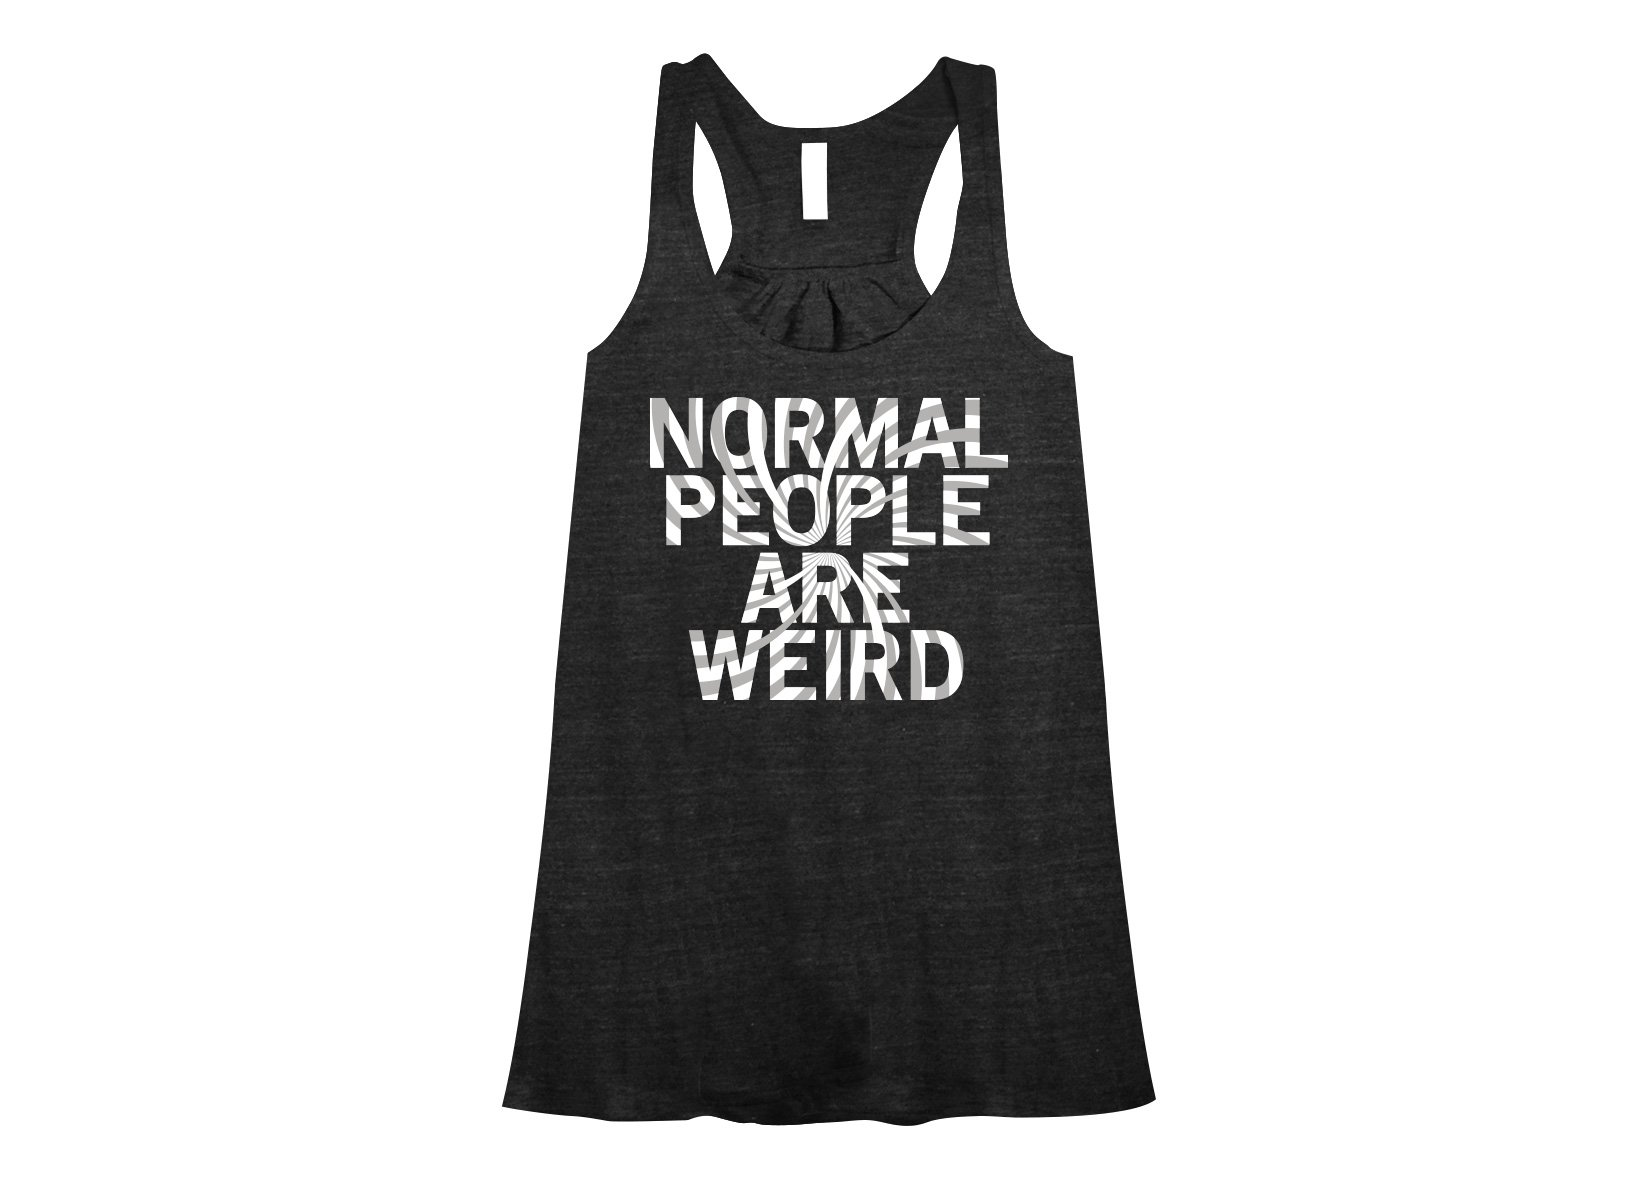 Normal People Are Weird on Womens Tanks T-Shirt